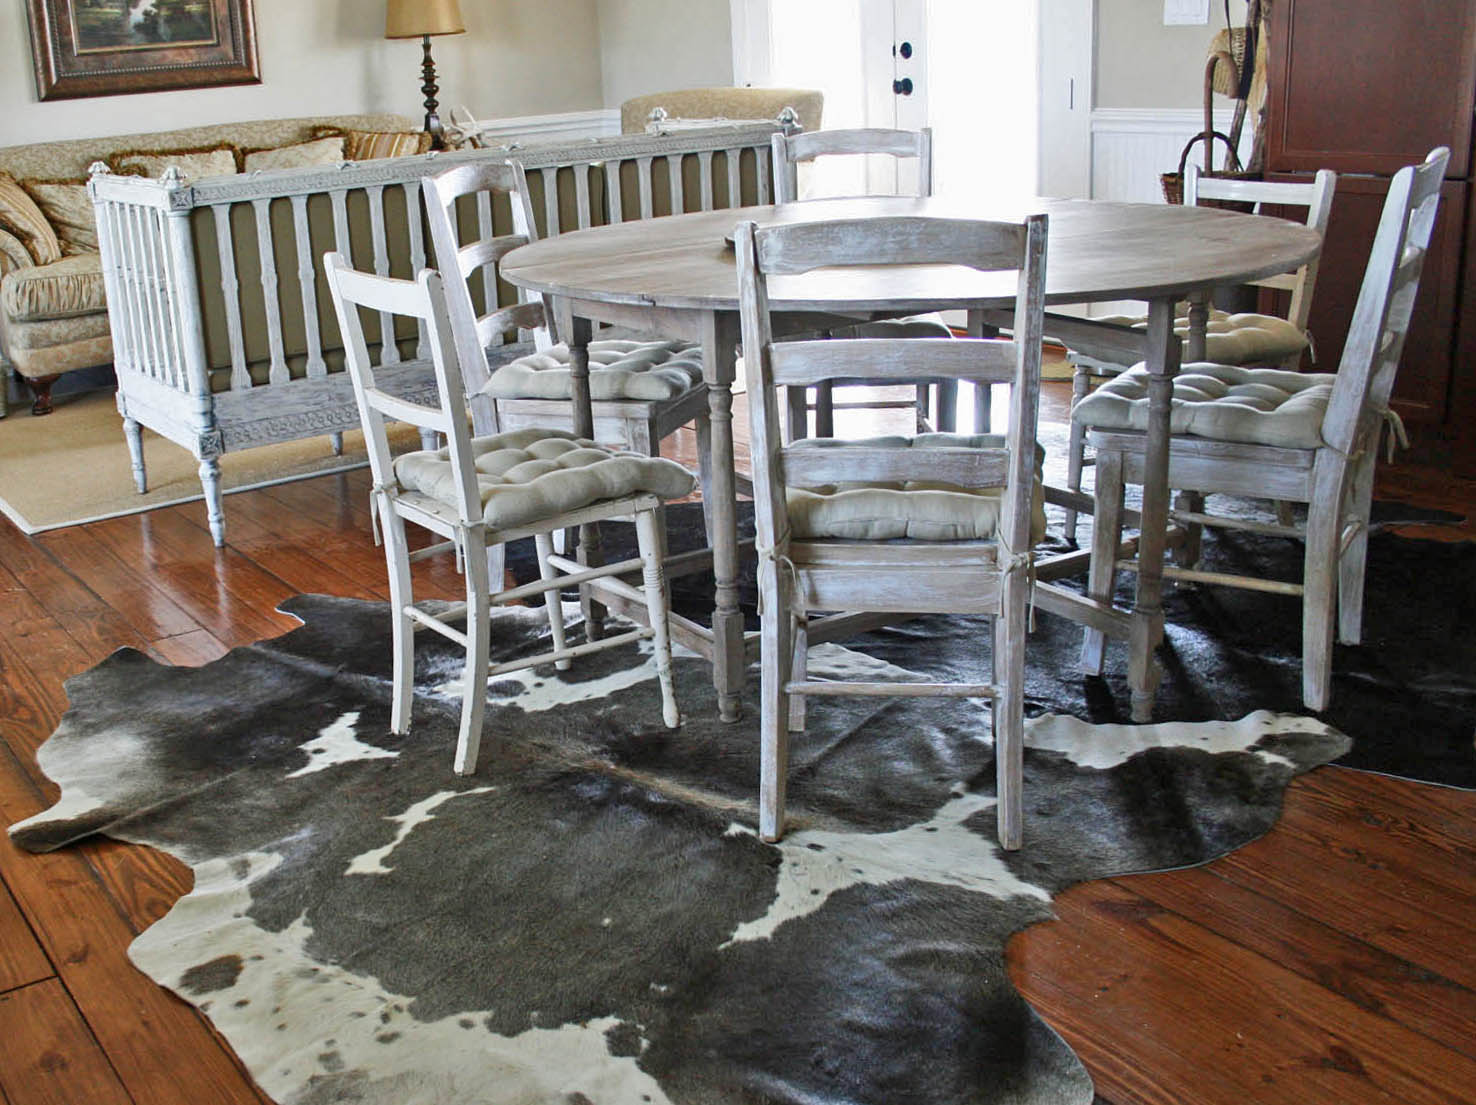 The Skinny On Decorating With Cowhide Rugs Cedar Hill Farmhouse - Cowhide rug dining room